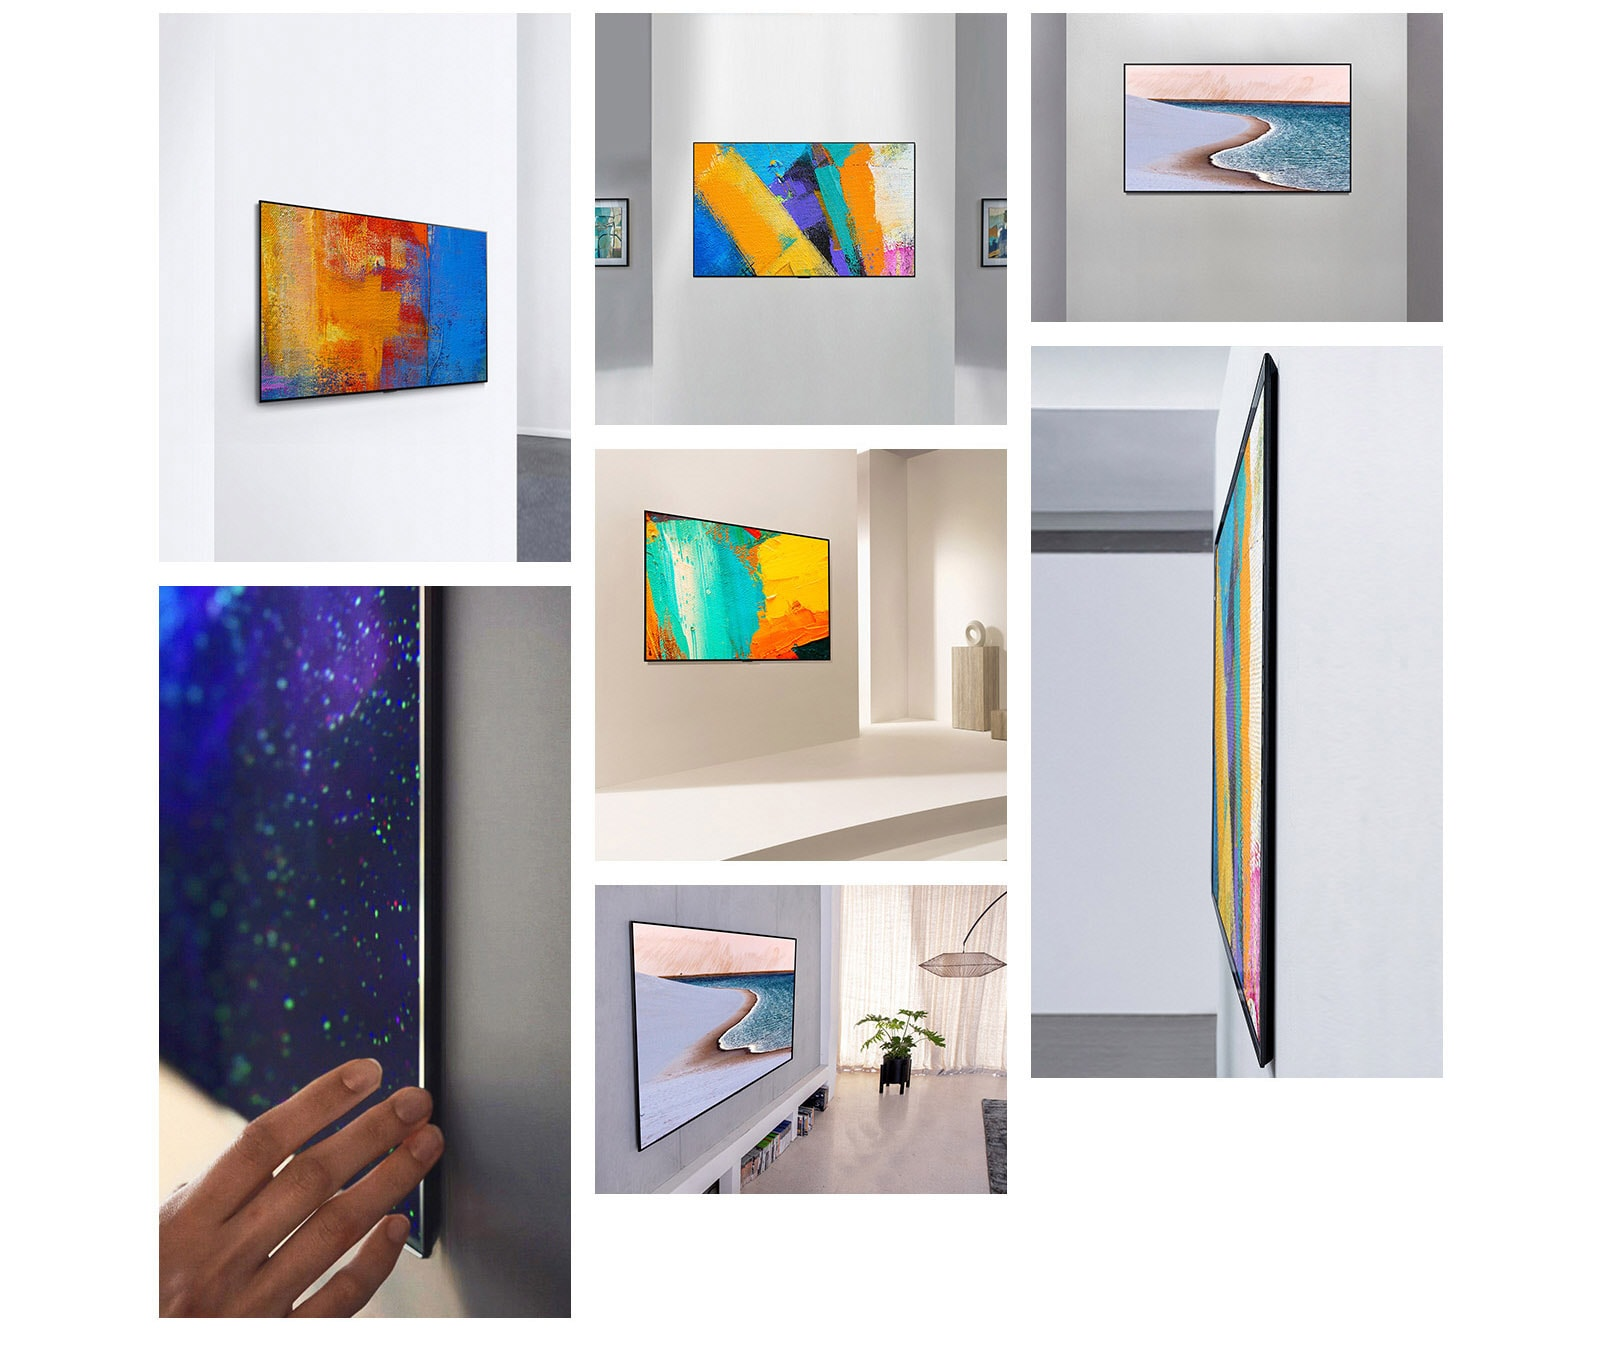 LG OLED77GXPTA Gallery View